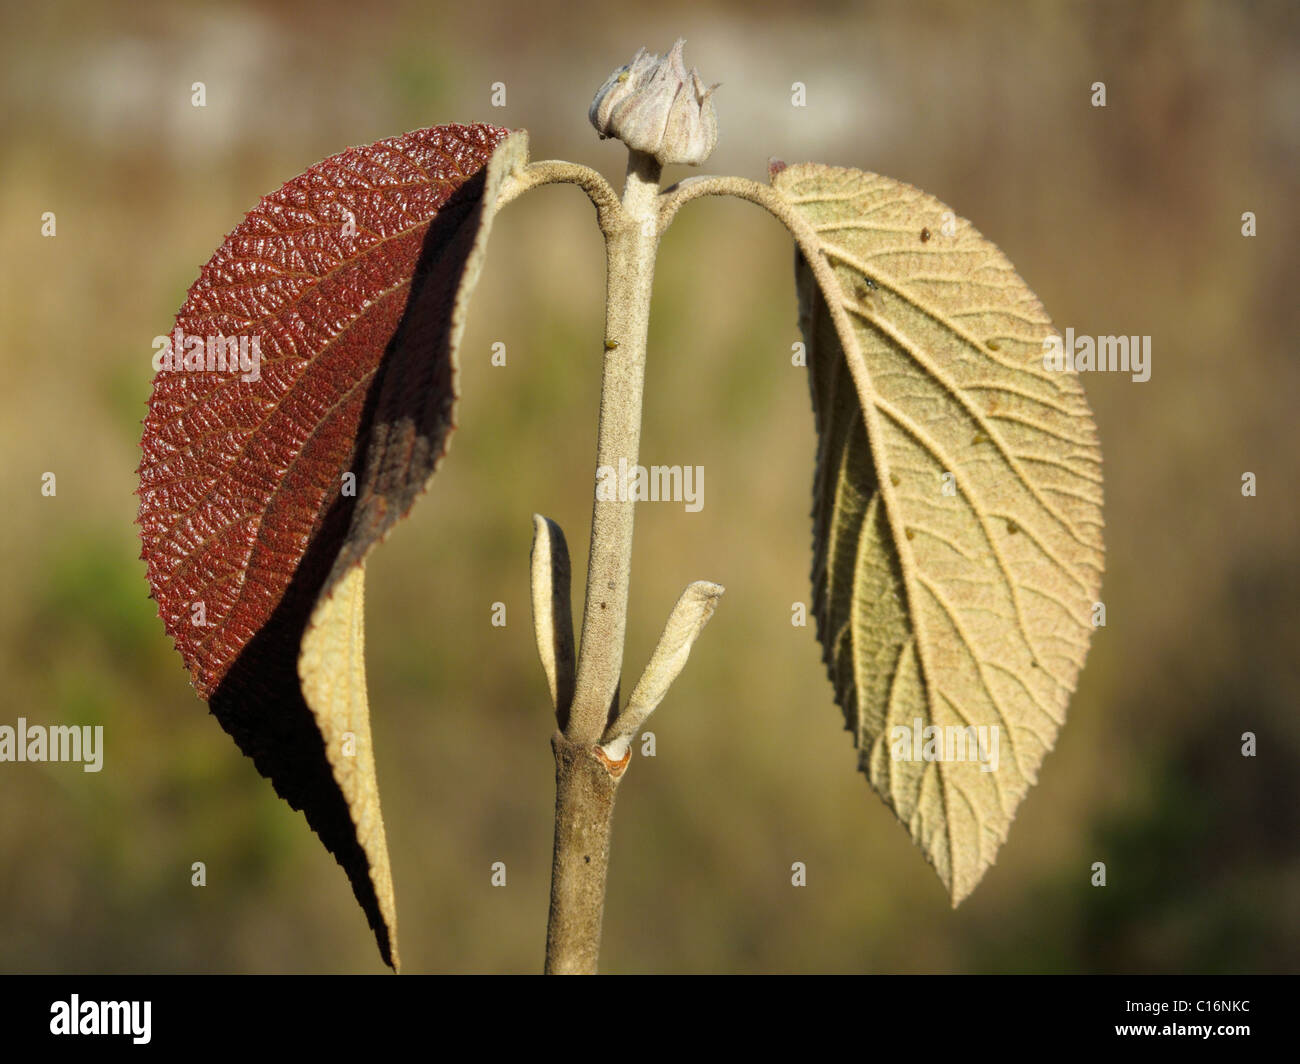 Leaf of a Wayfaring Tree (Viburnum lantana), Bavaria, Germany, Europe Stock Photo